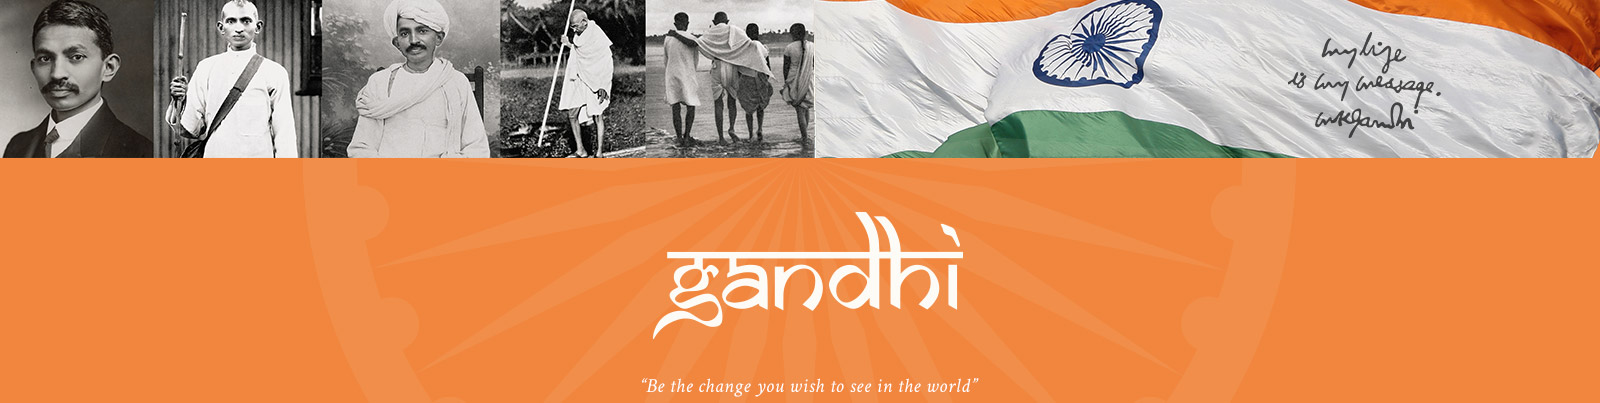 Gandhi Fine Silver Coin Set, Be the Change you Wish to See in the World